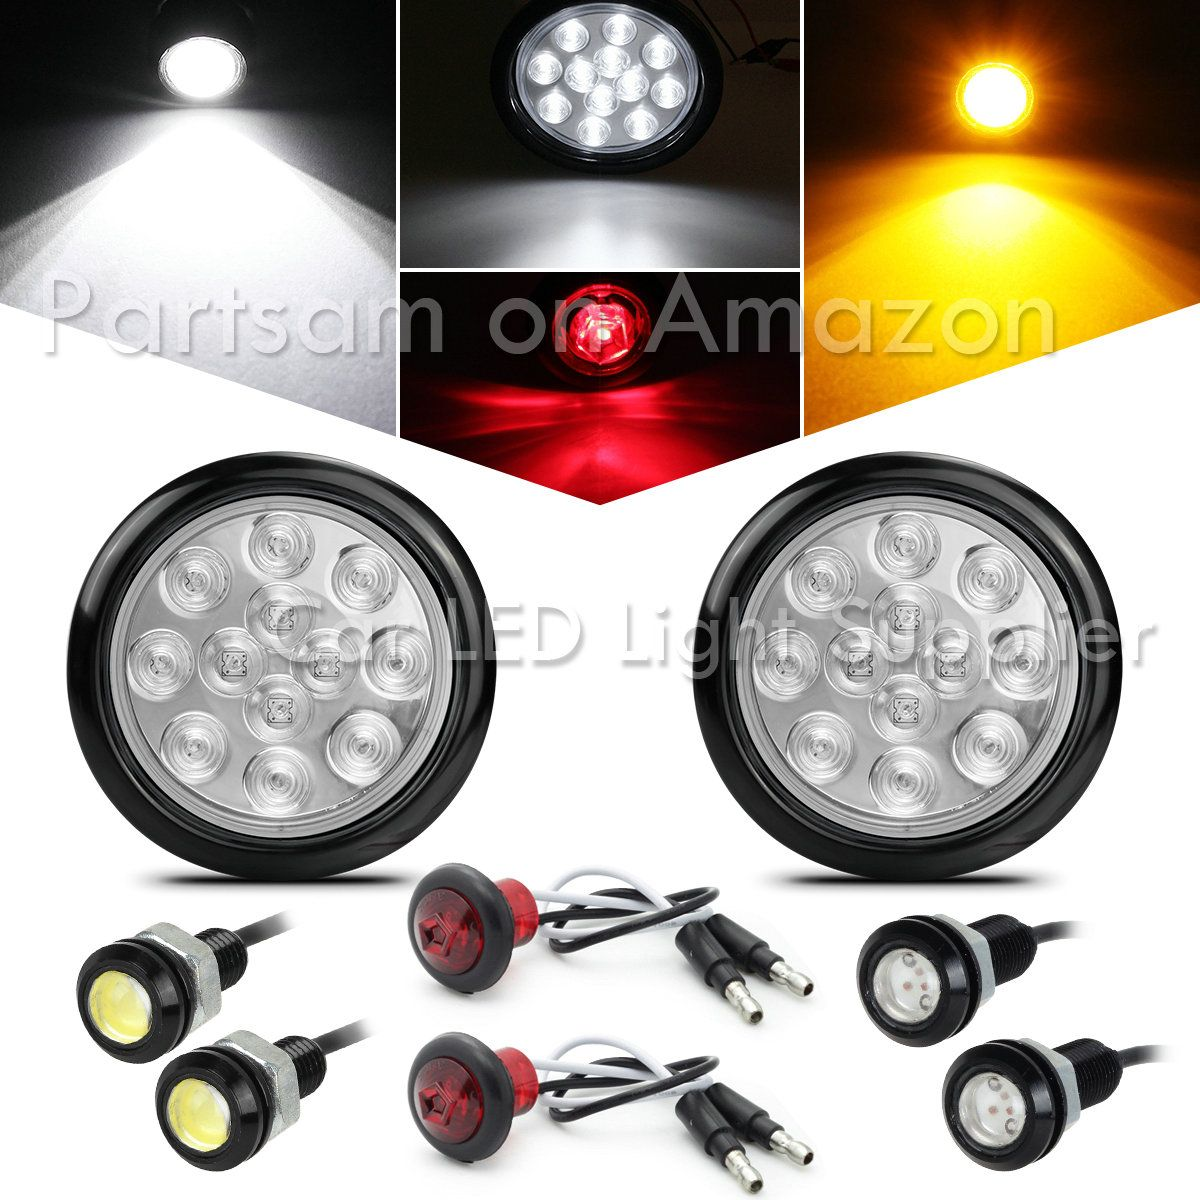 Partsam 12v 4 Round Led Truck Trailer Rv Stop Turn Tail Lights Chrome Grommets 12led 4 Round Led Truck Trailer Truck And Trailer Car Led Lights Tail Light